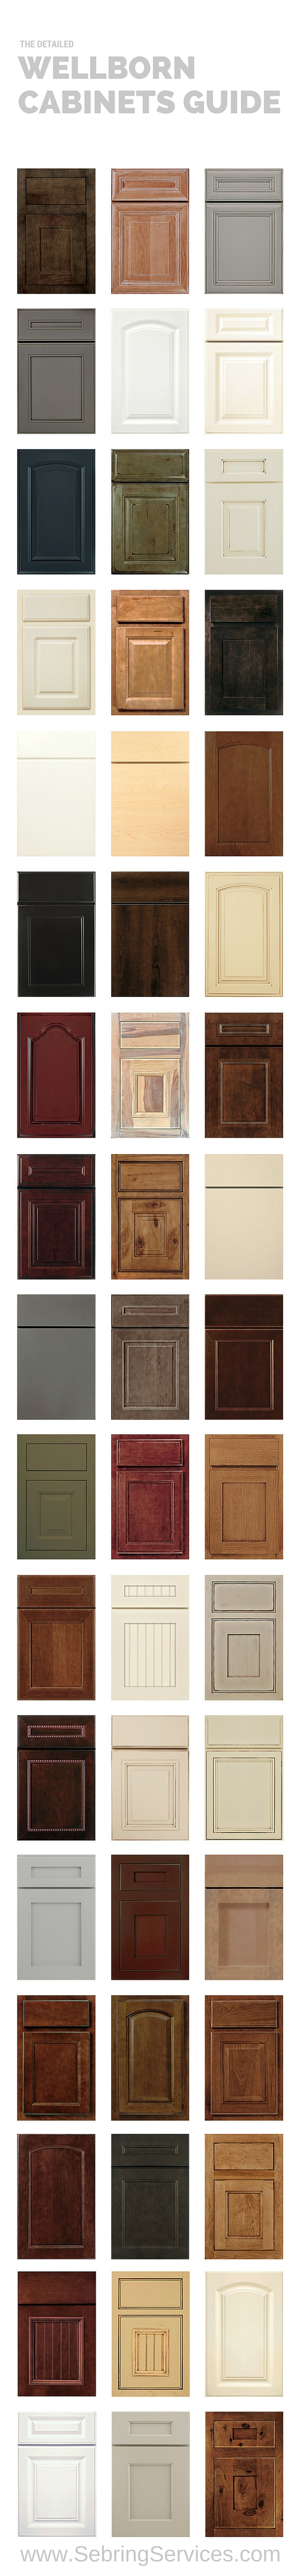 the detailed wellborn cabinets guide sebring services door style cabinet lighting guide sebring